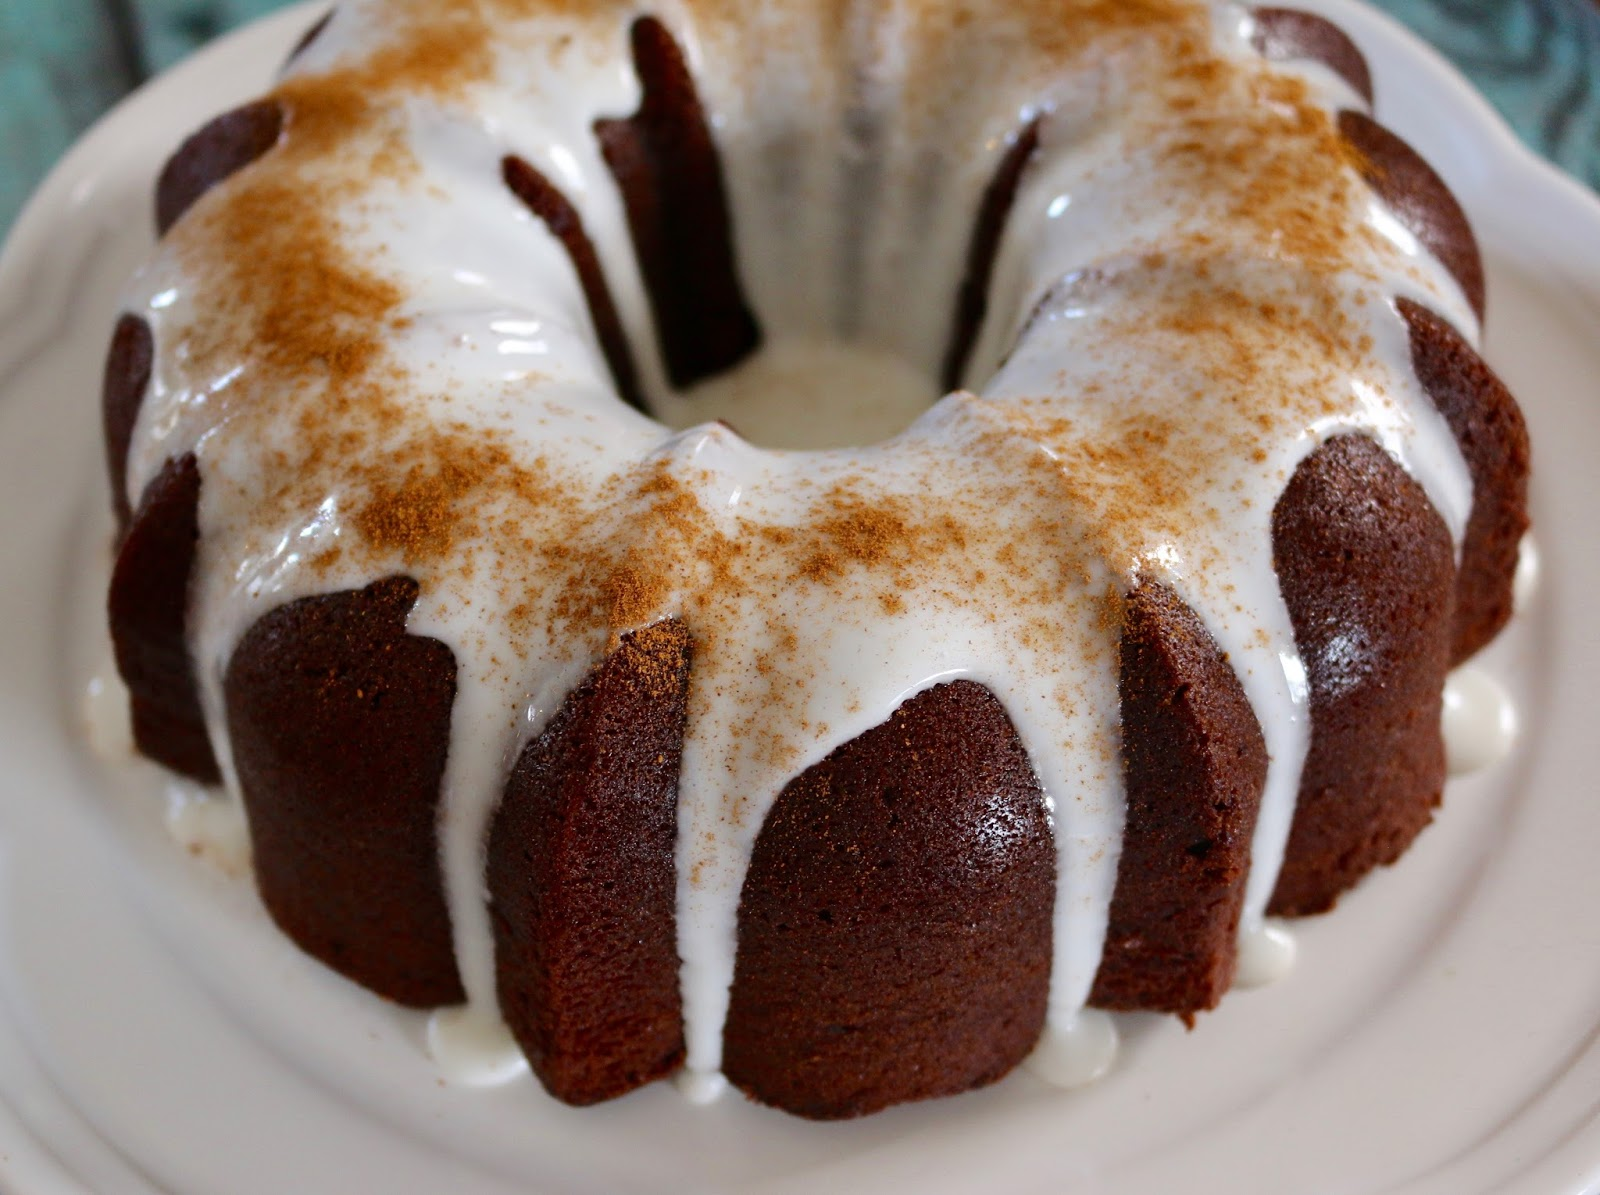 ... Left Are The Crumbs: Chile Hot Chocolate Bundt Cake ~ #BundtBakers